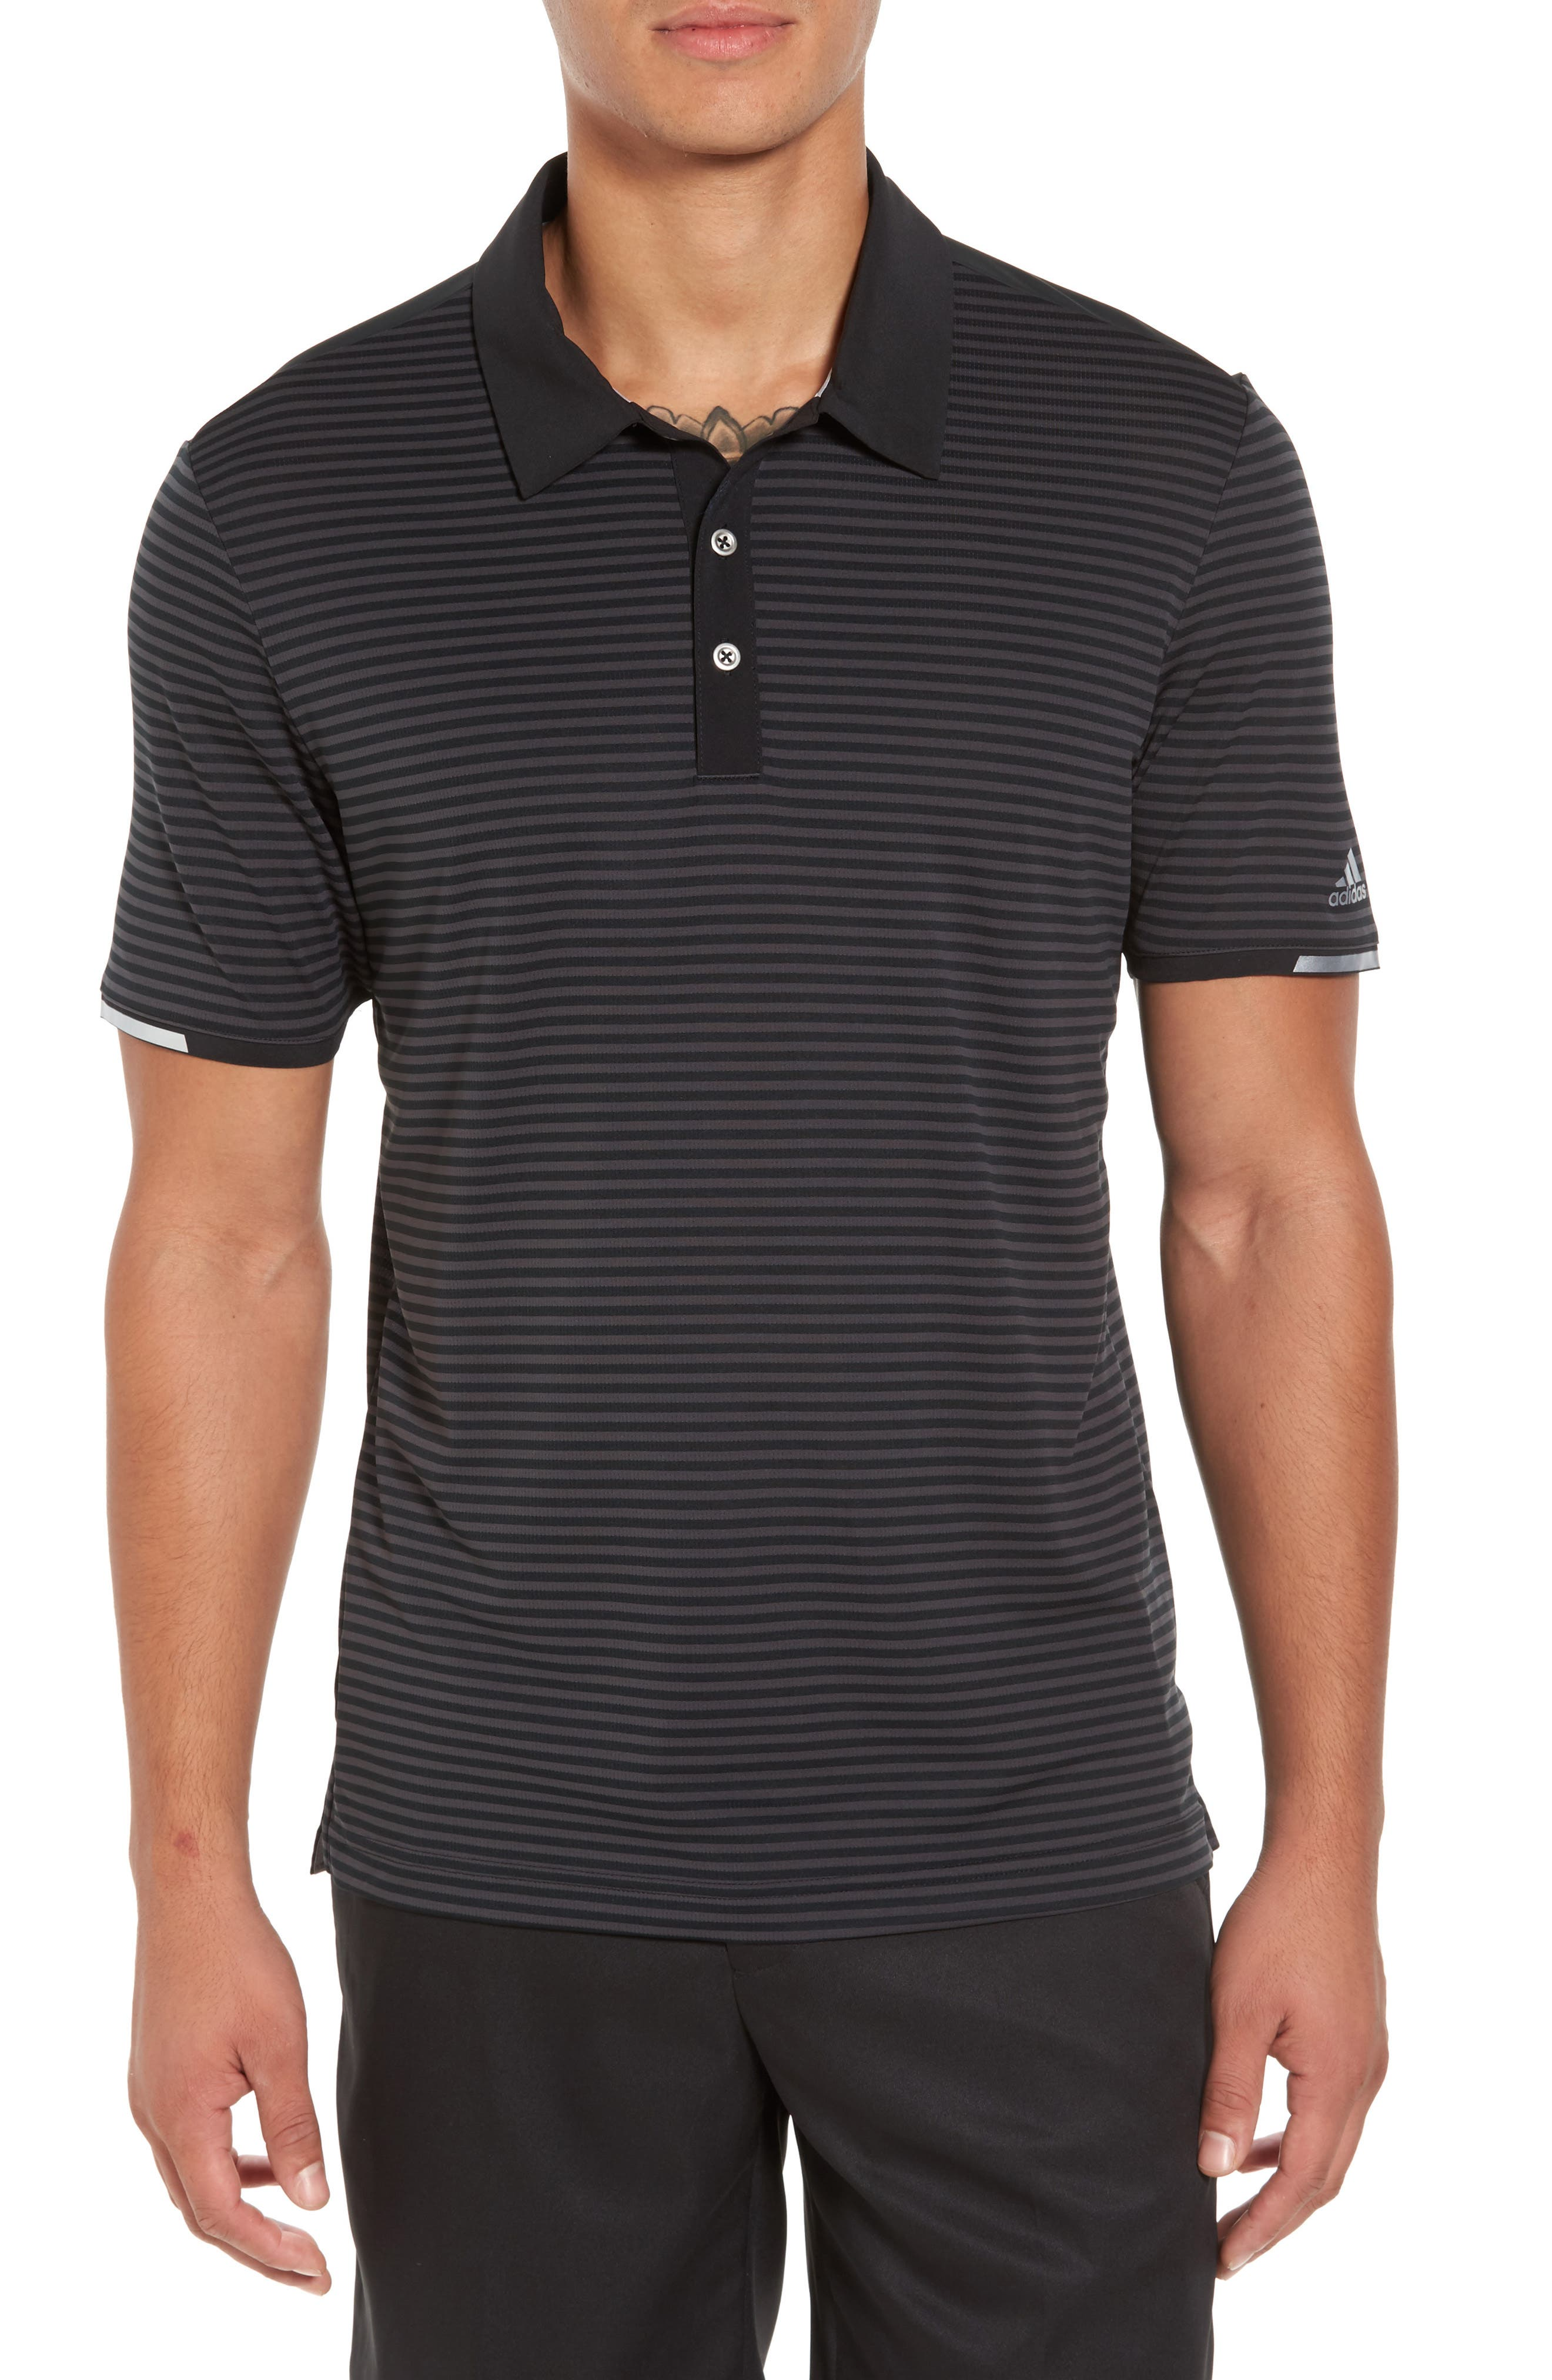 Alternate Image 1 Selected - adidas Climachill® Stripe Golf Polo